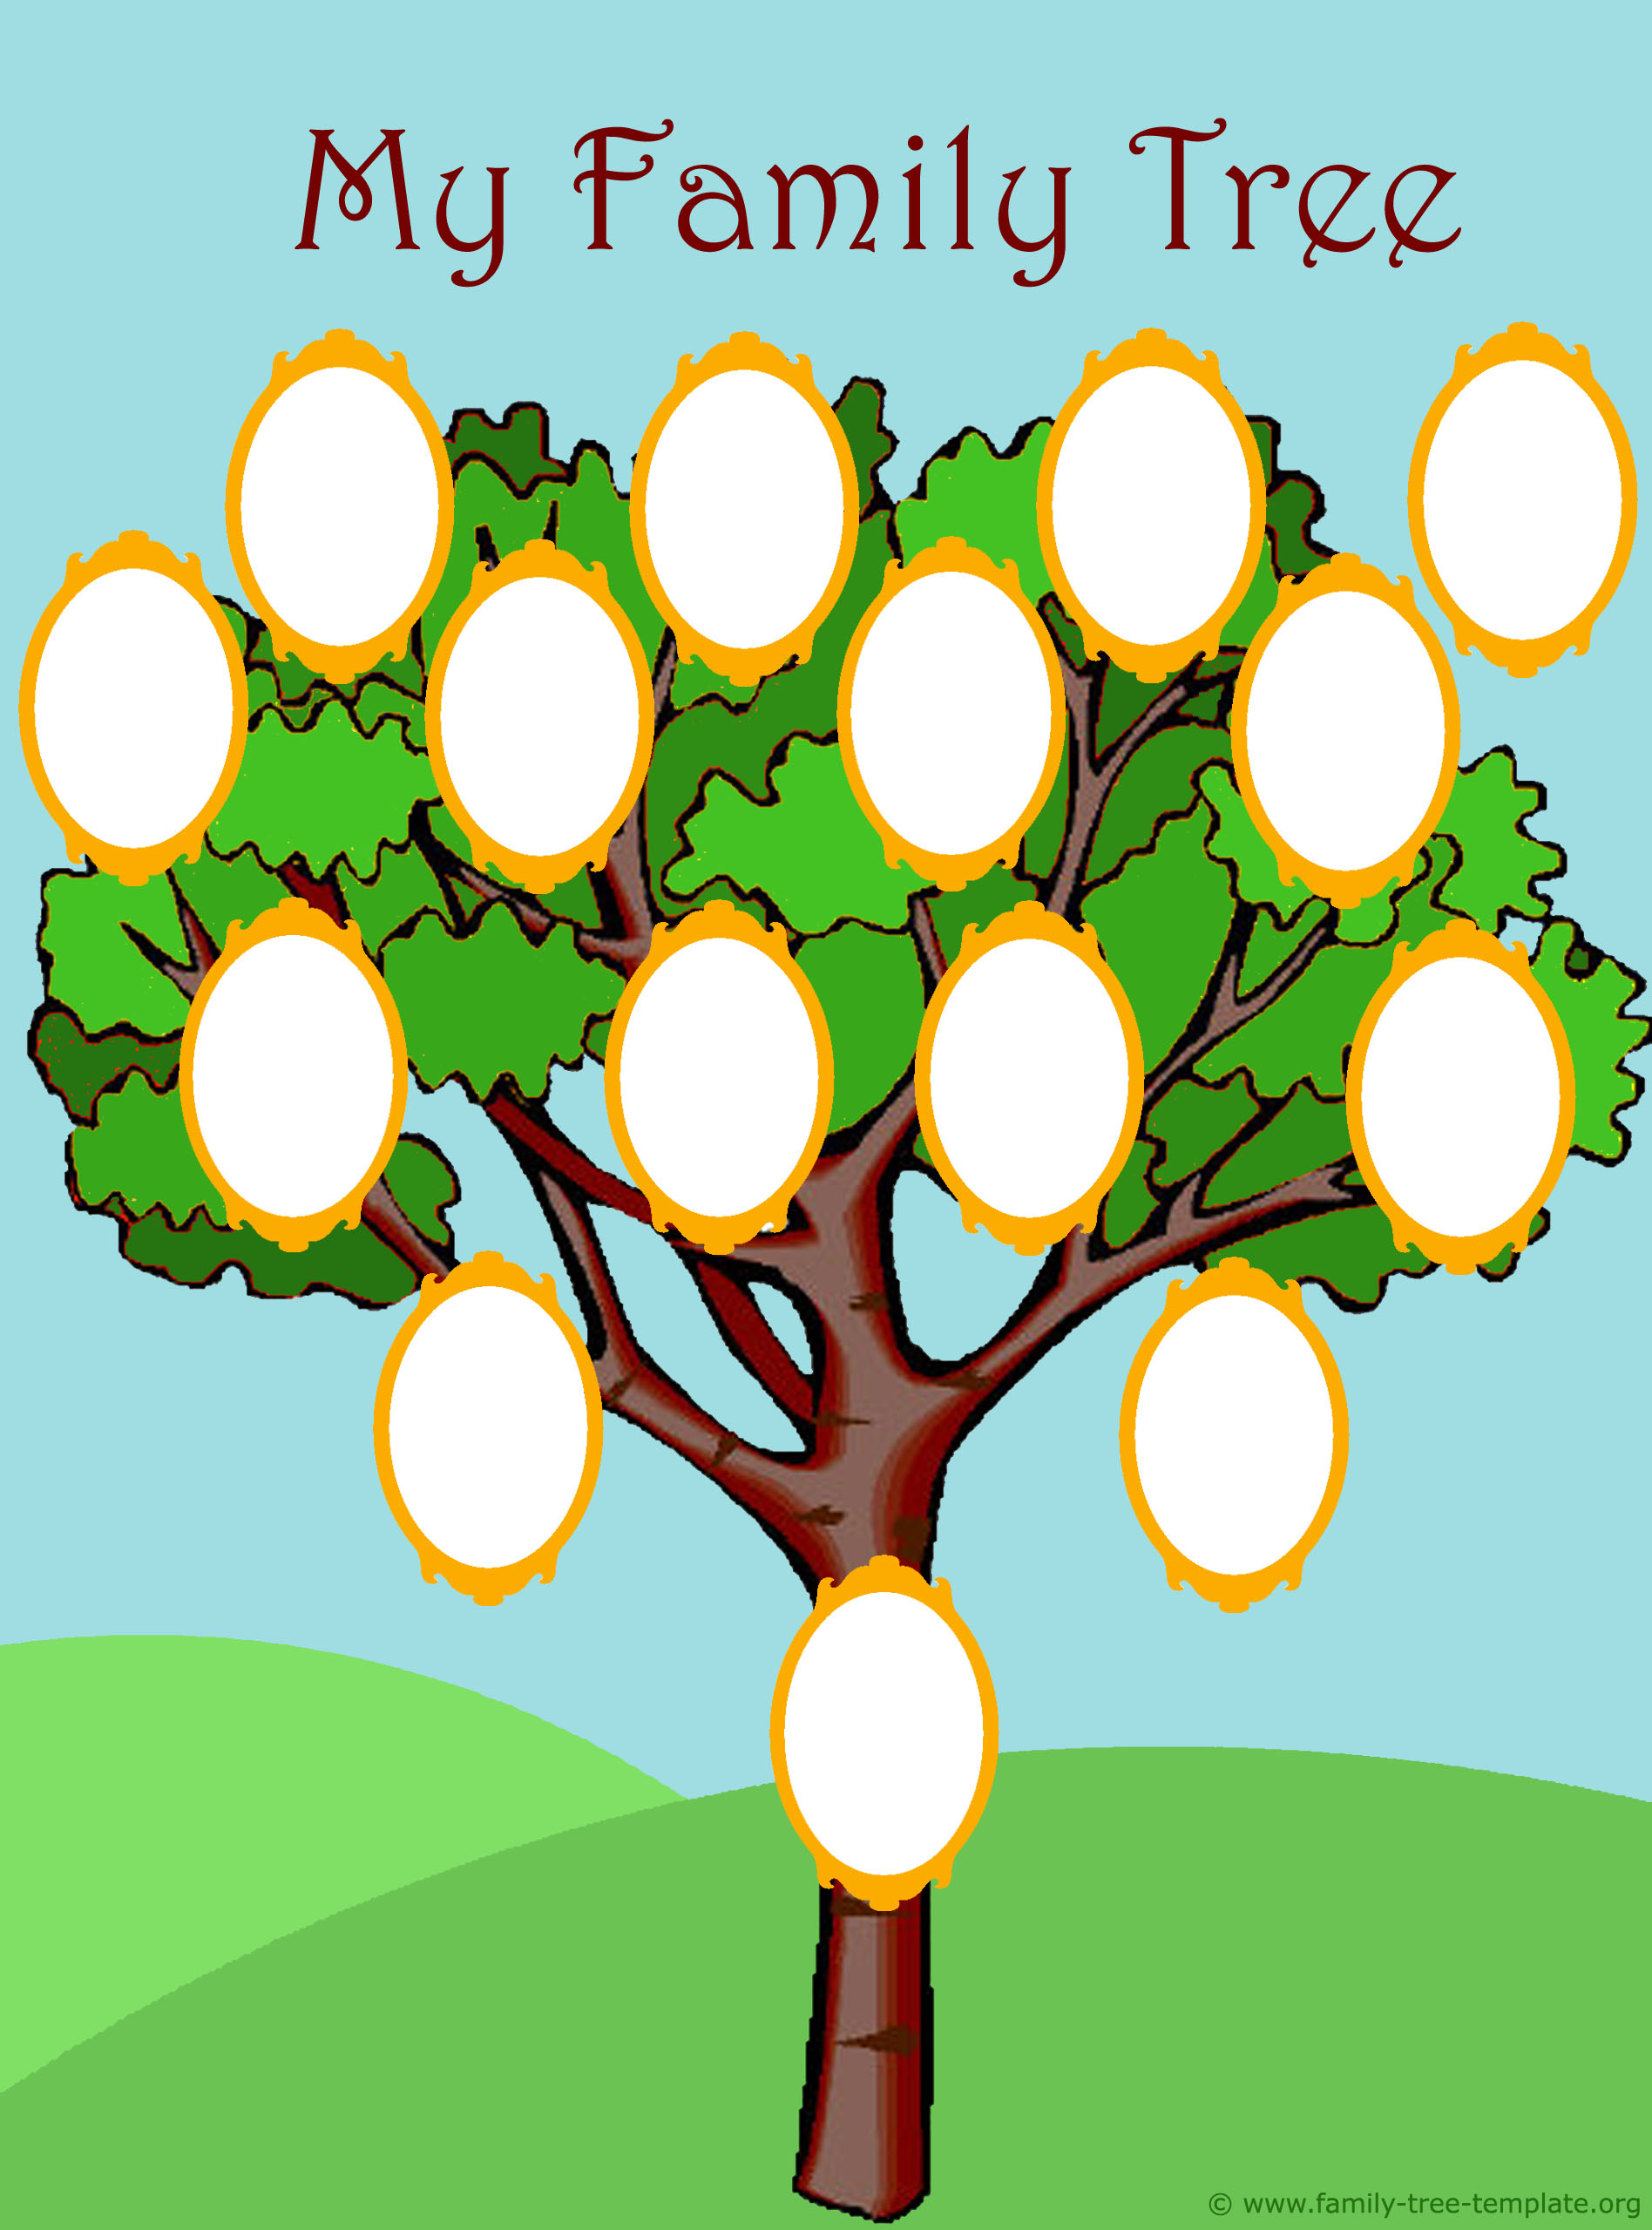 Colorful family tree for kids with picture of photo frames for family members. Have fun tracing your ancestors.